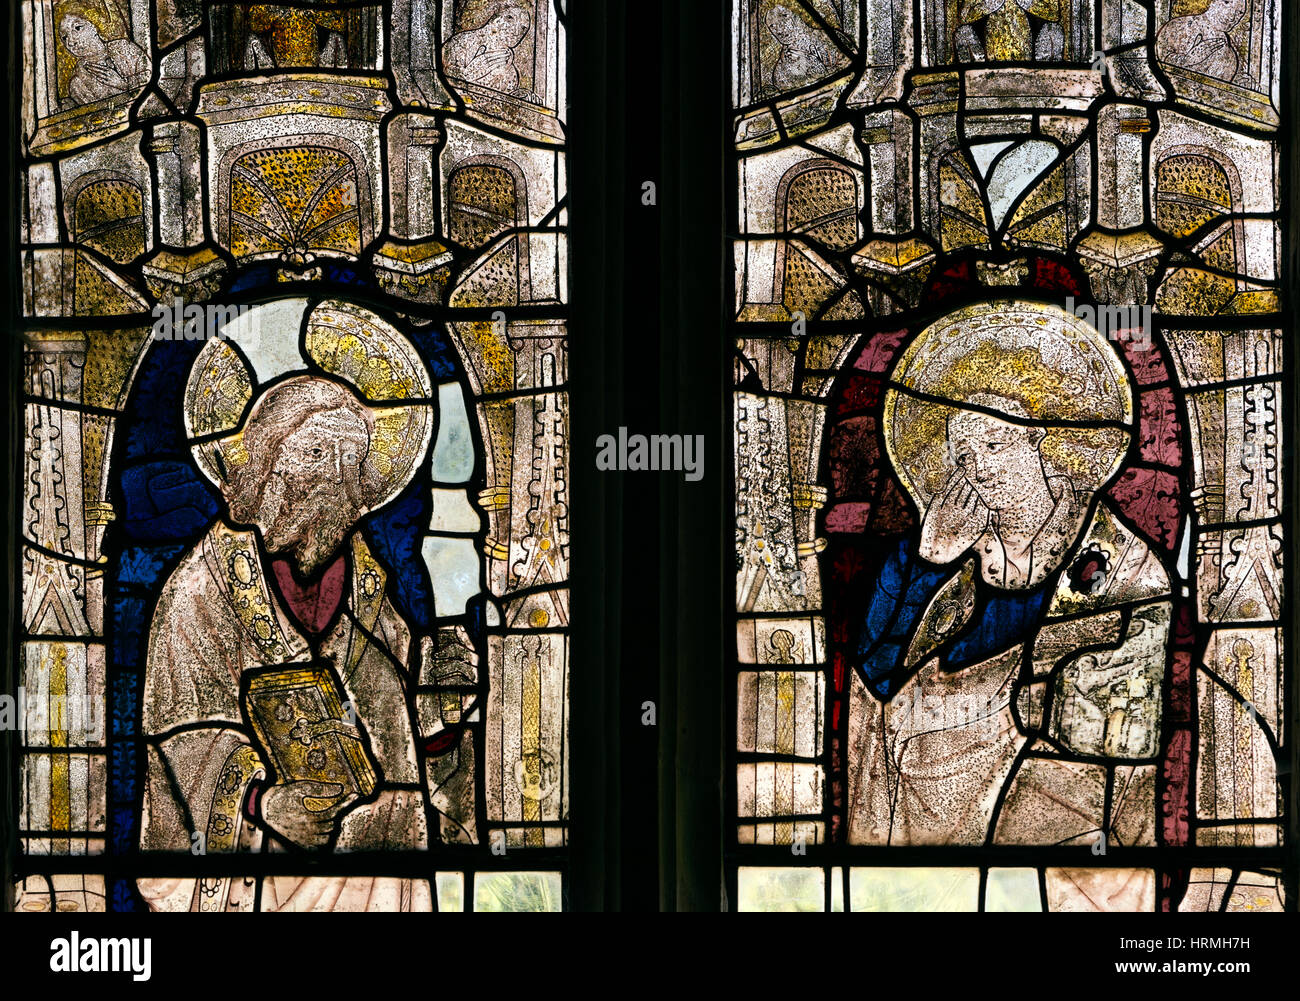 Medieval stained glass, St. Michael and All Angels Church, Stanton, Gloucestershire, England, UK - Stock Image